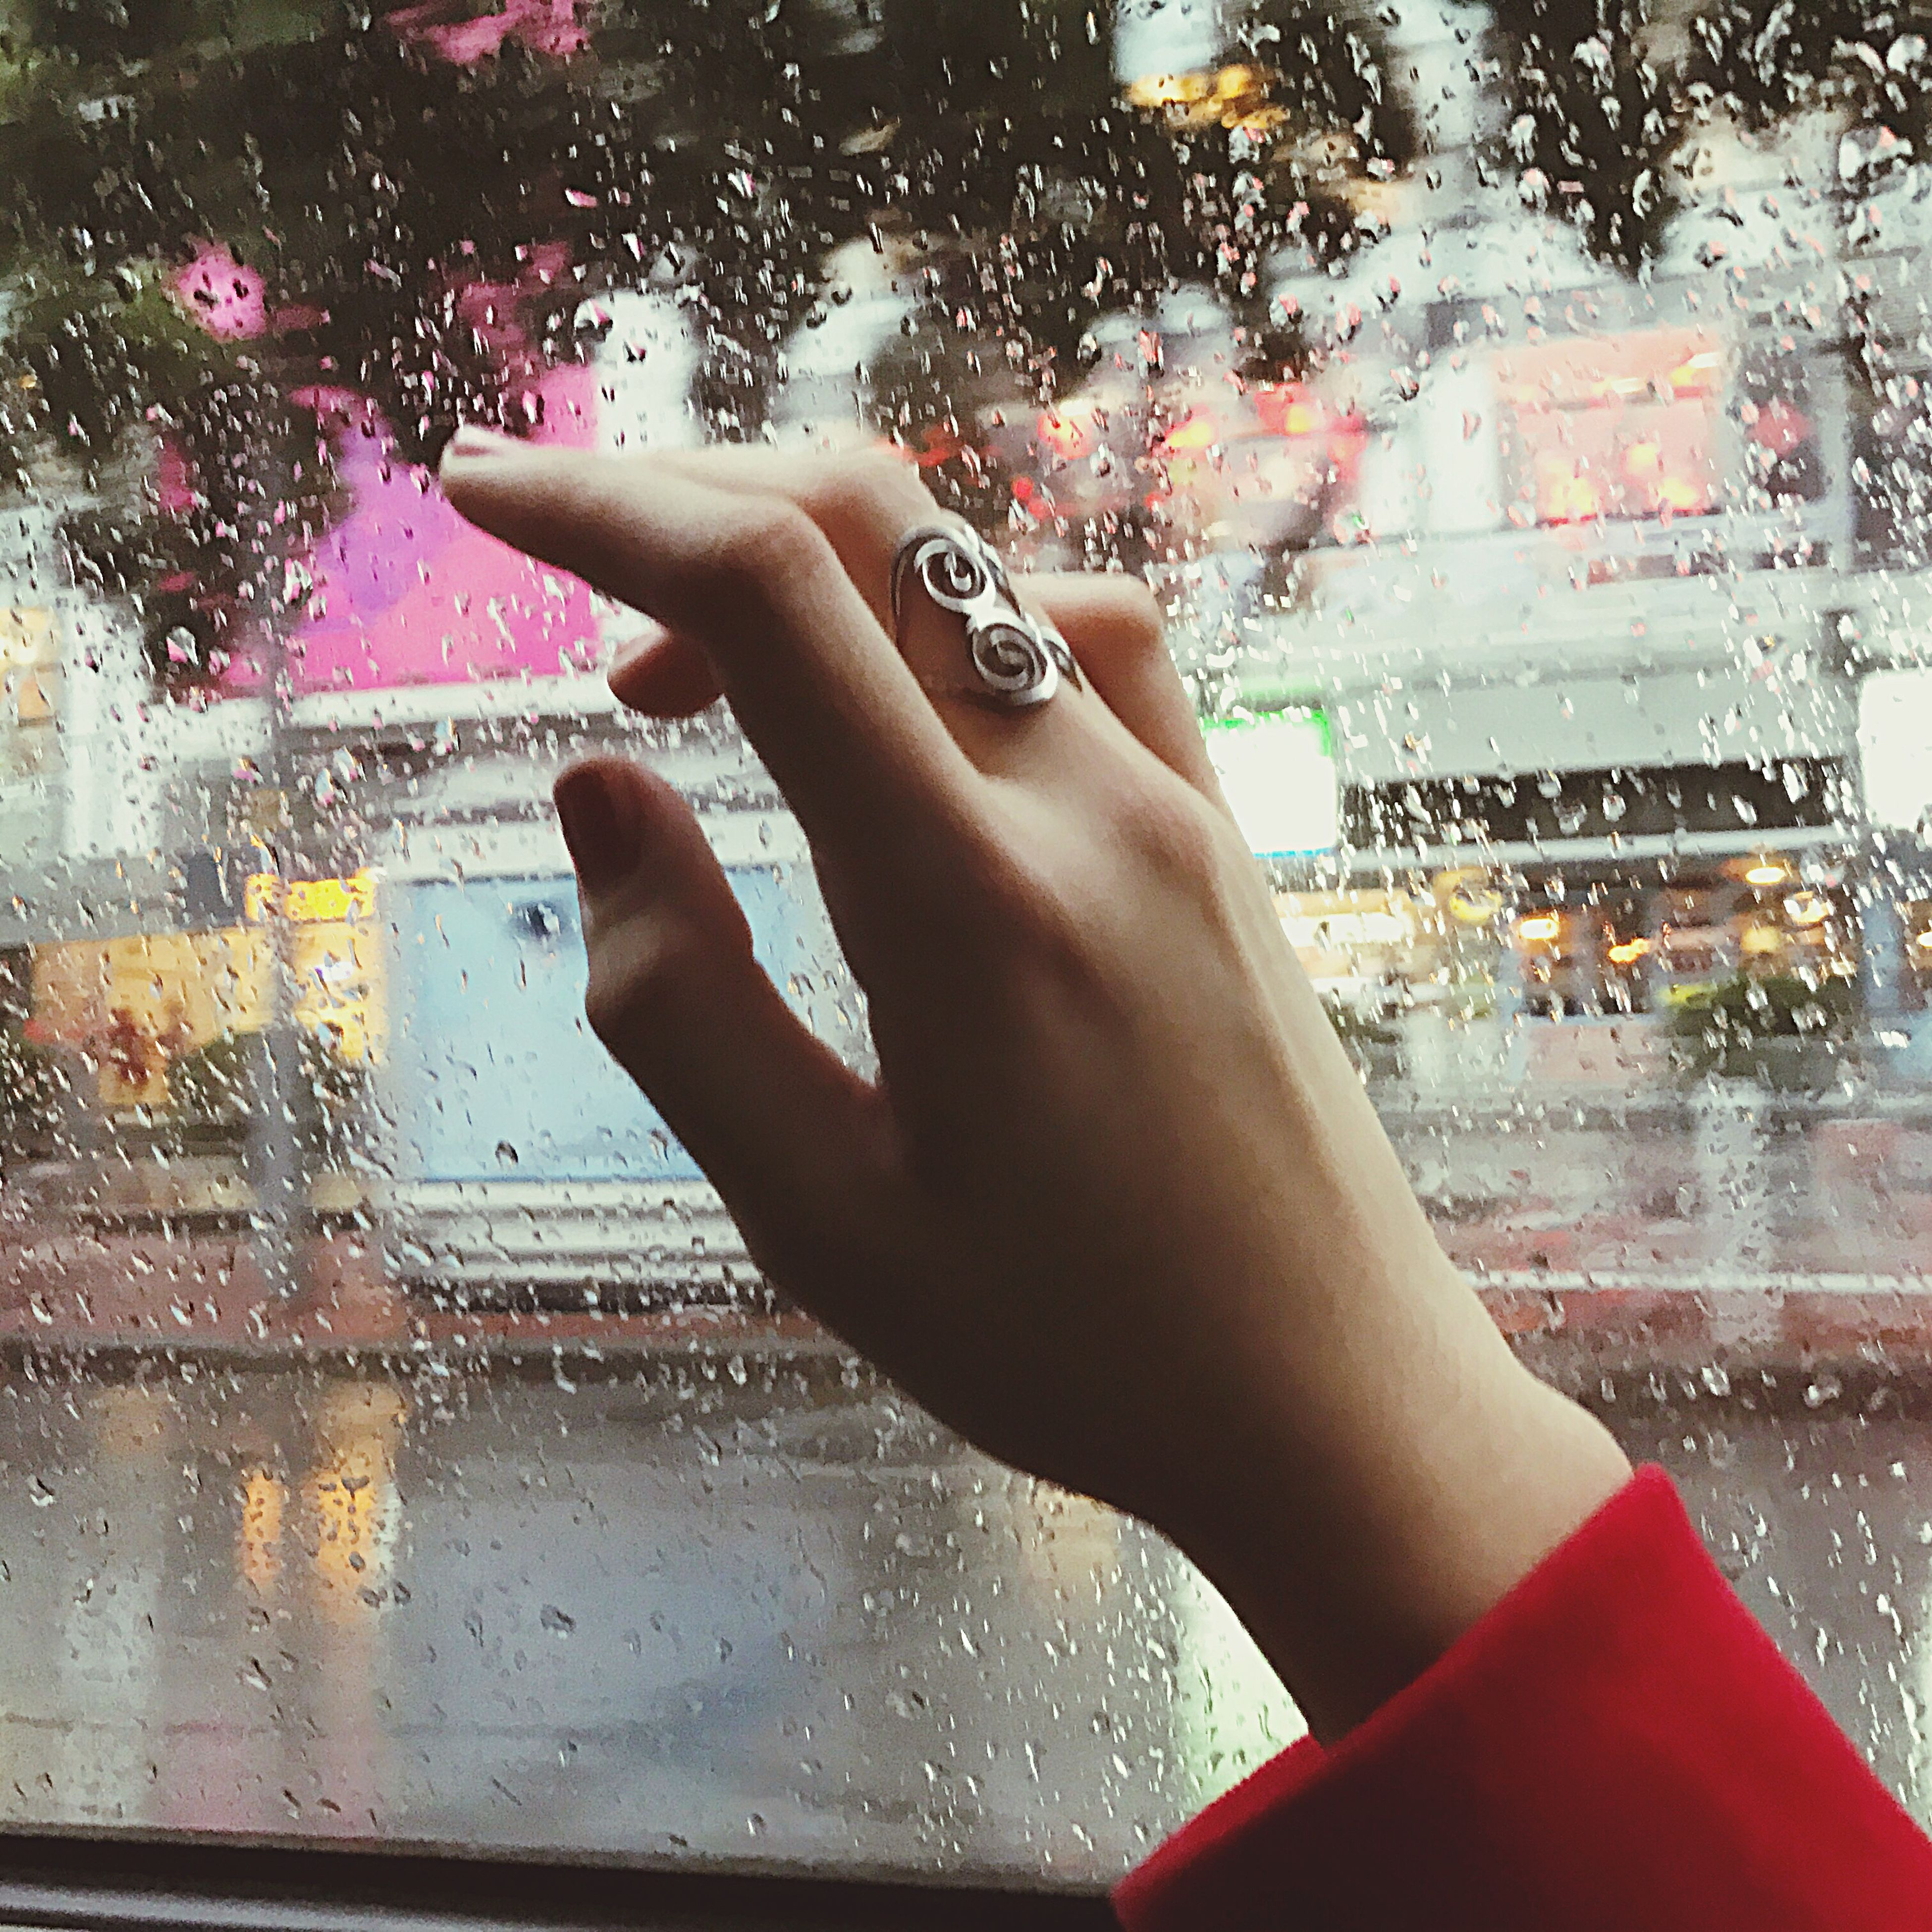 glass - material, human hand, window, human body part, transparent, vehicle interior, lifestyles, drop, wet, windshield, leisure activity, looking through window, real people, rain, close-up, one person, car interior, rainy season, holding, water, day, adults only, sky, raindrop, people, indoors, adult